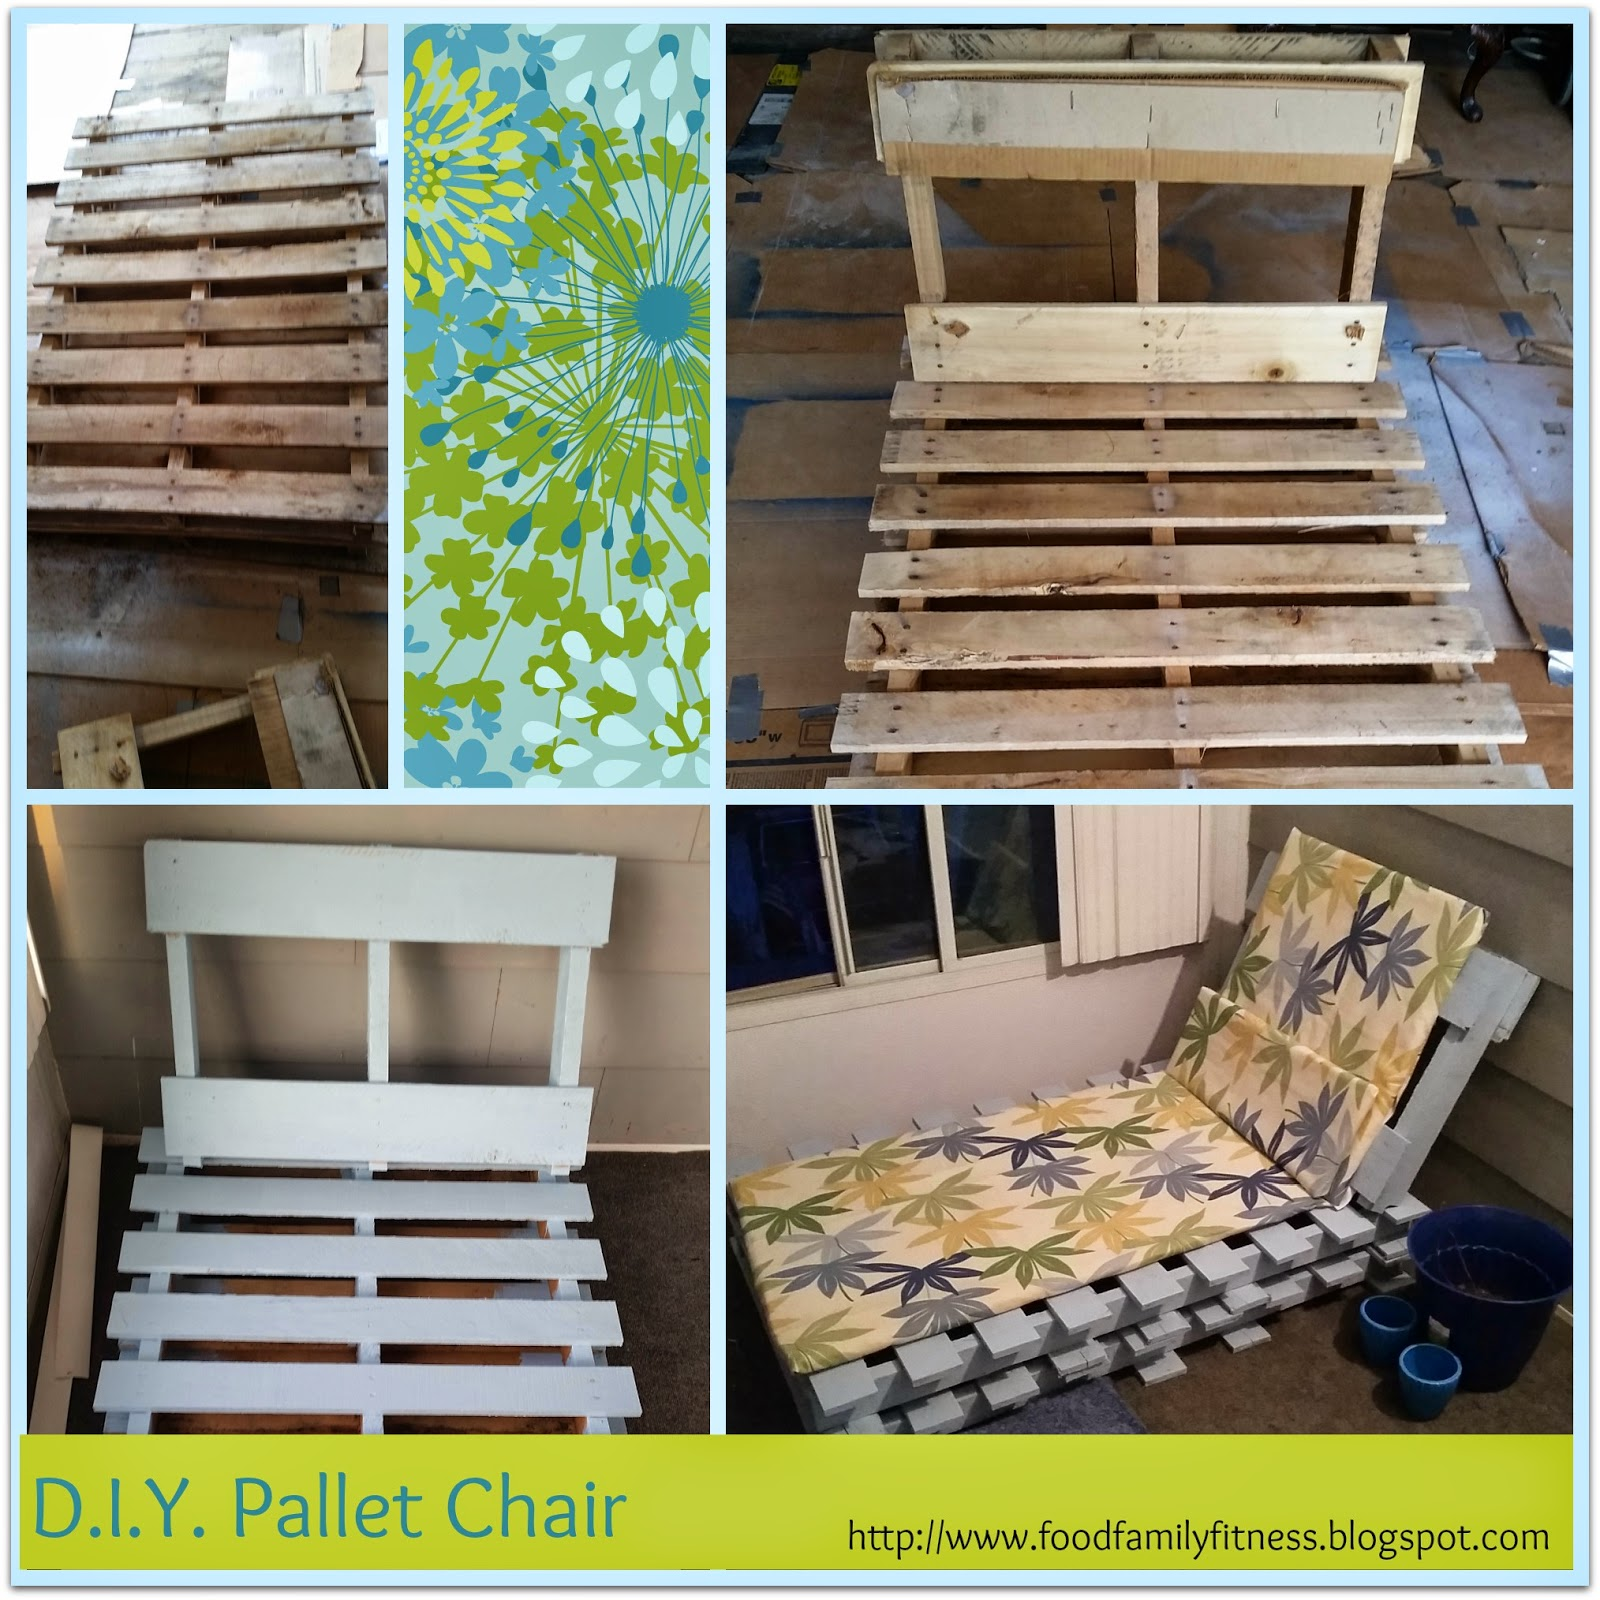 D.I.Y Pallet Lounge Chair | Triple F: Food, Family & Fitness